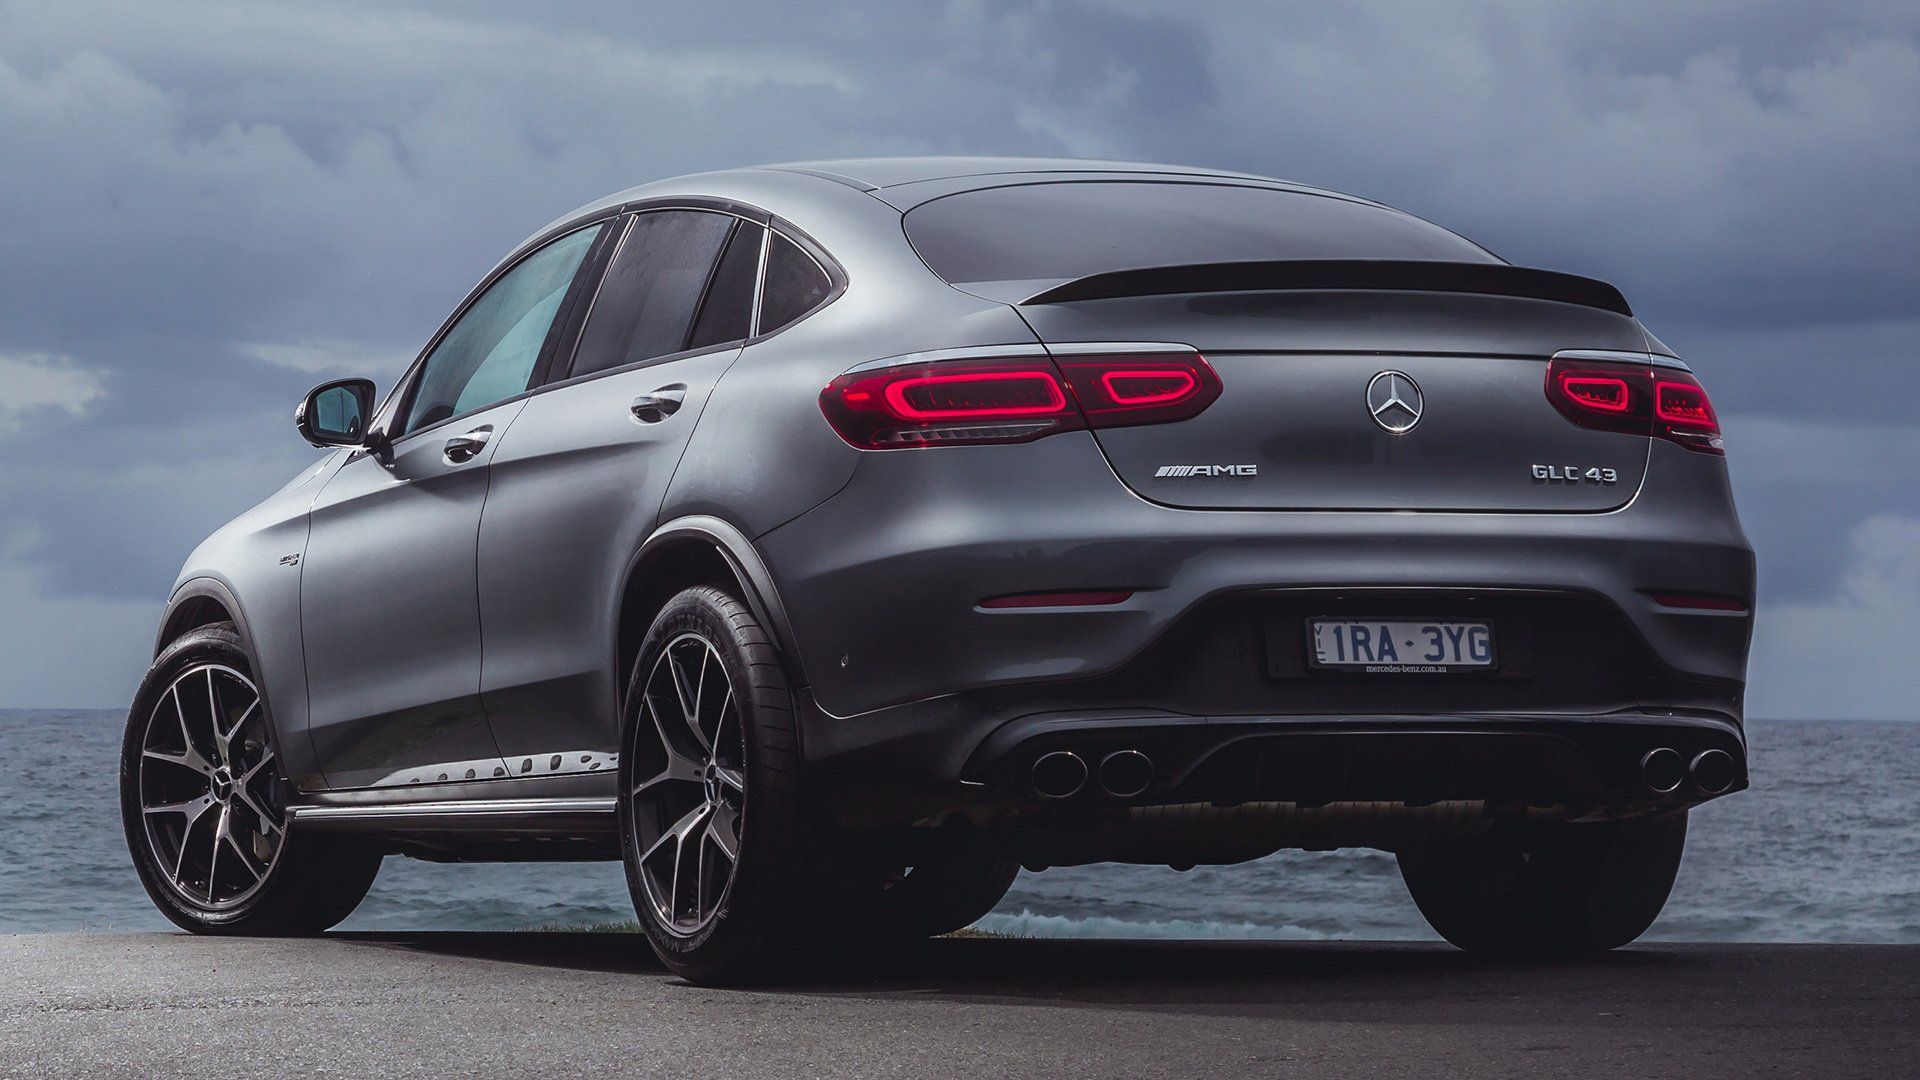 2020 Mercedes Amg Glc 43 Coupe Hd Wallpaper Background Image 1920x1080 Id 1070113 Wallpaper Abyss